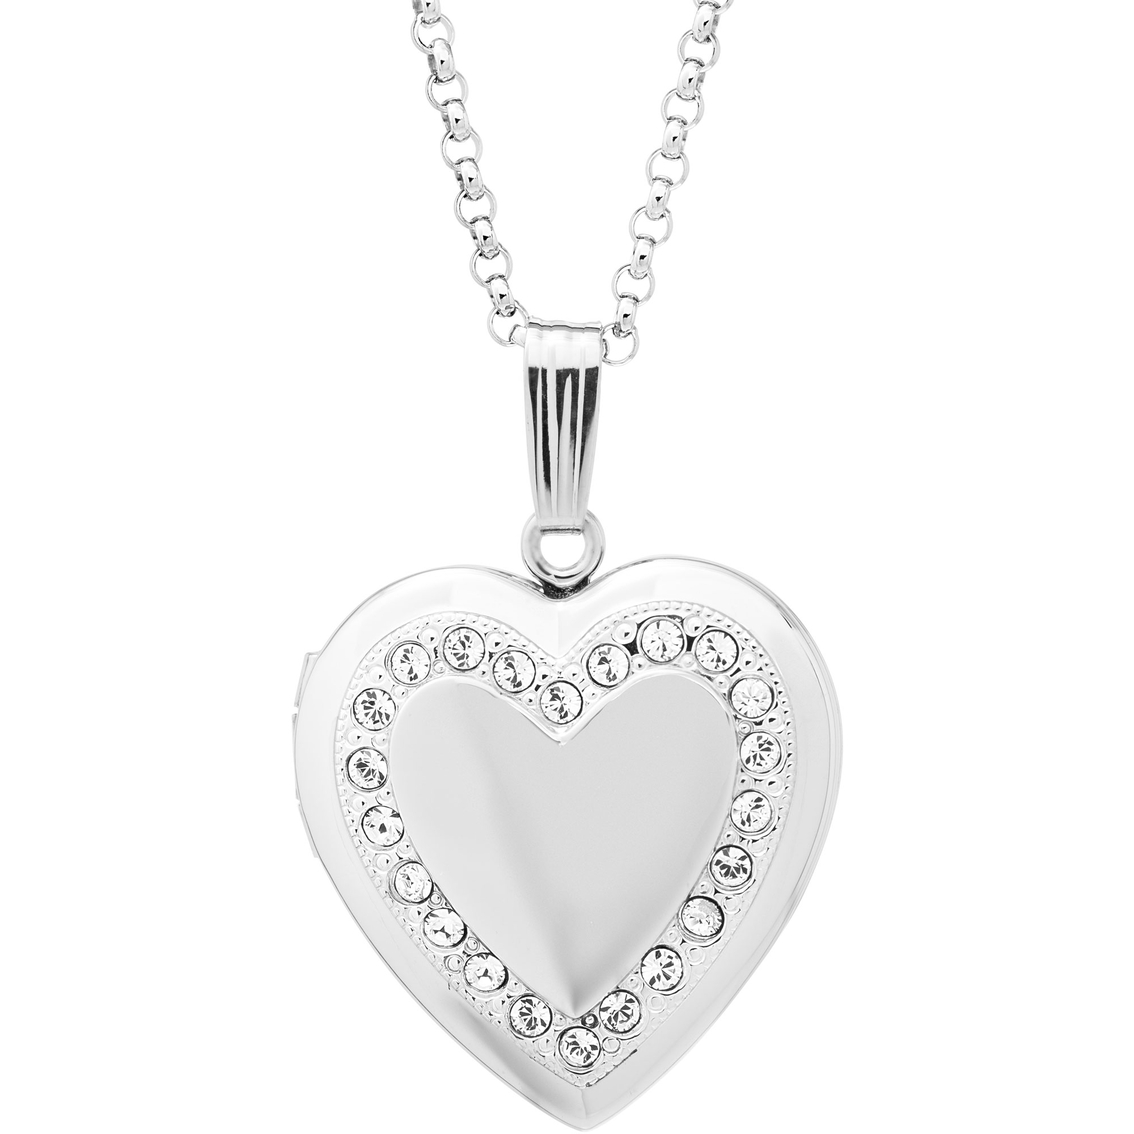 1134x1134 Sterling Silver Heart Shaped Locket With Genuine Austrian Crystal